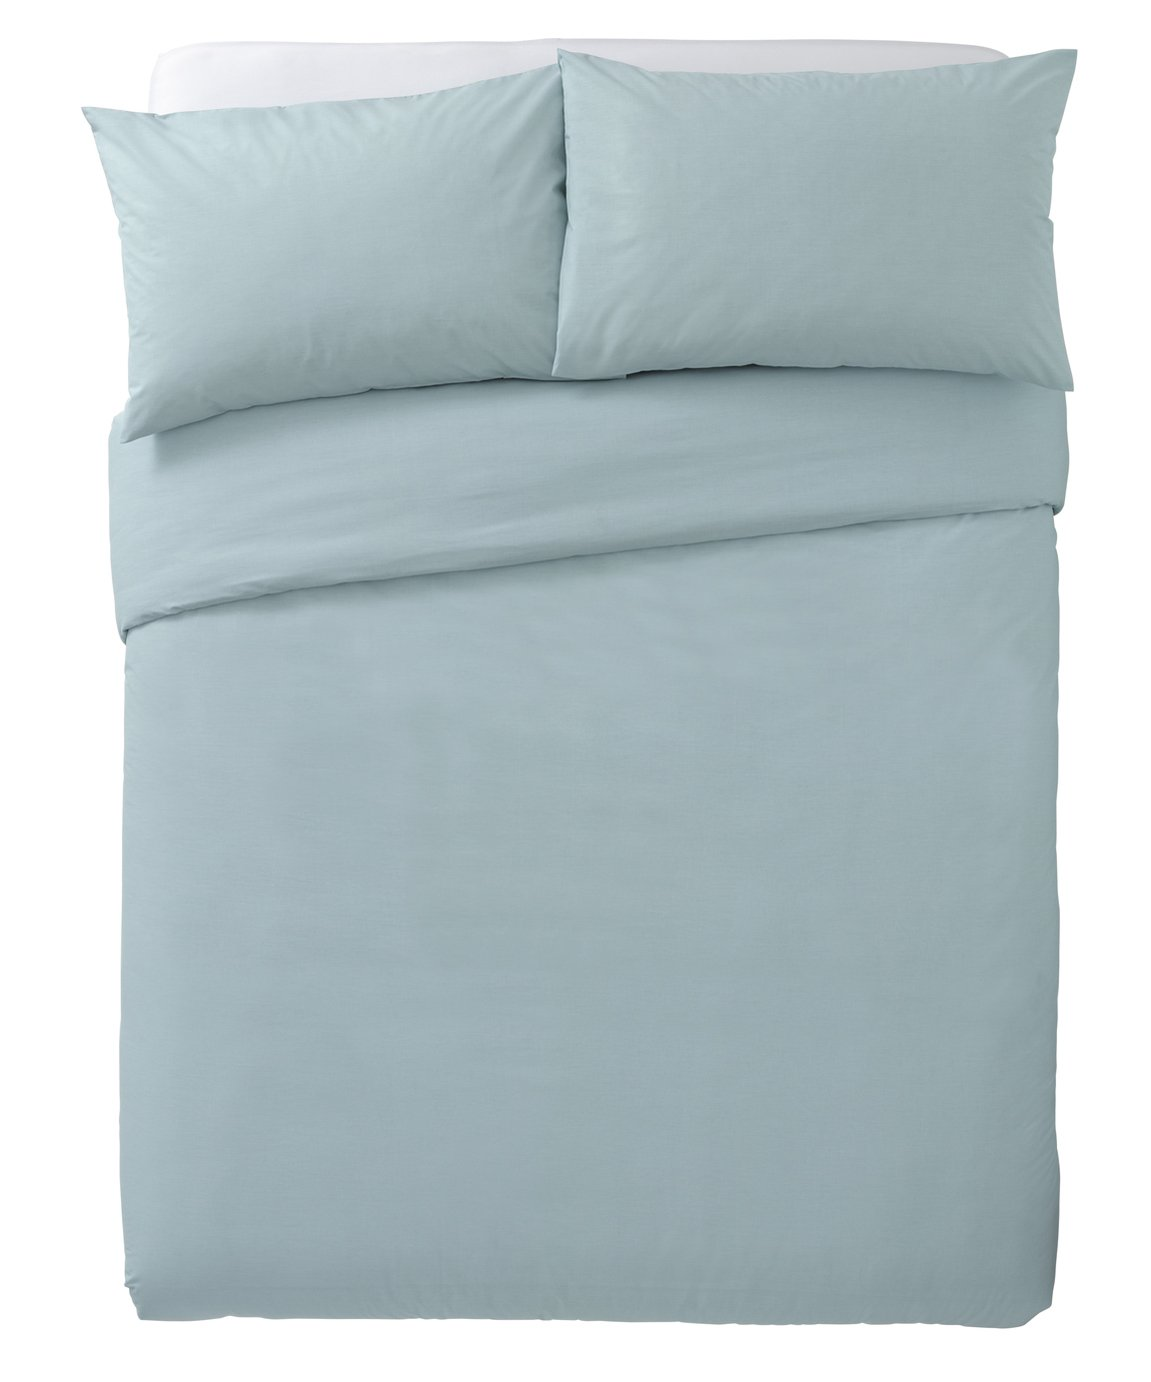 Argos Home Cotton Rich Bedding Set